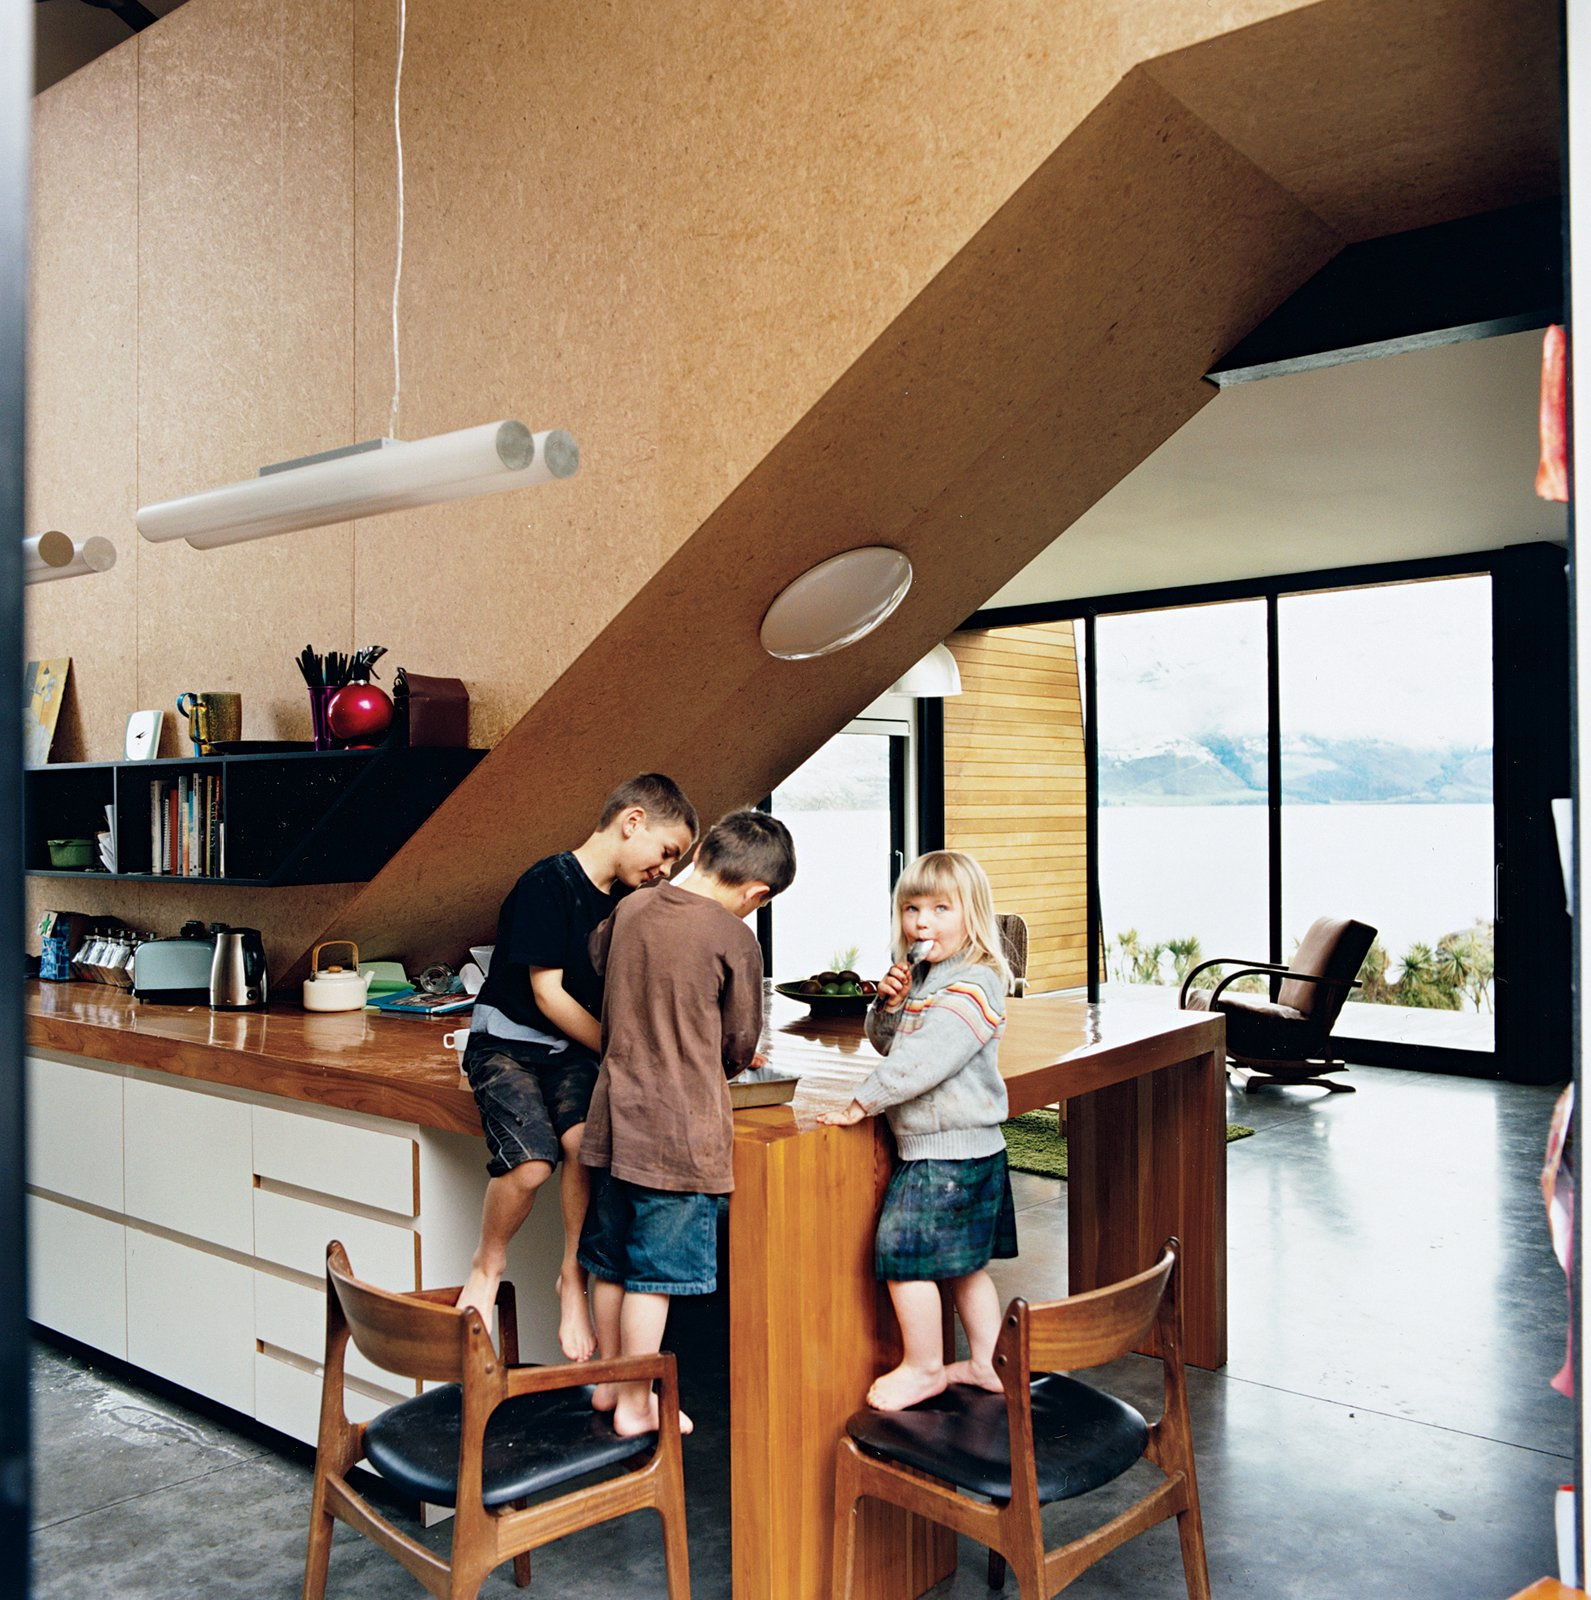 """The kids, Archie, Linus, and Olive, stand in the kitchen, beneath the strand board–clad stairwell that leads to the bedrooms. Kerr and Ritchie initially envisaged rich materials for the interior, but changed their minds in favor of what they call a """"cartoony"""" approach with cheaper, hard-wearing elements. """"We didn't want the space to feel too grown-up,"""" Kerr says."""